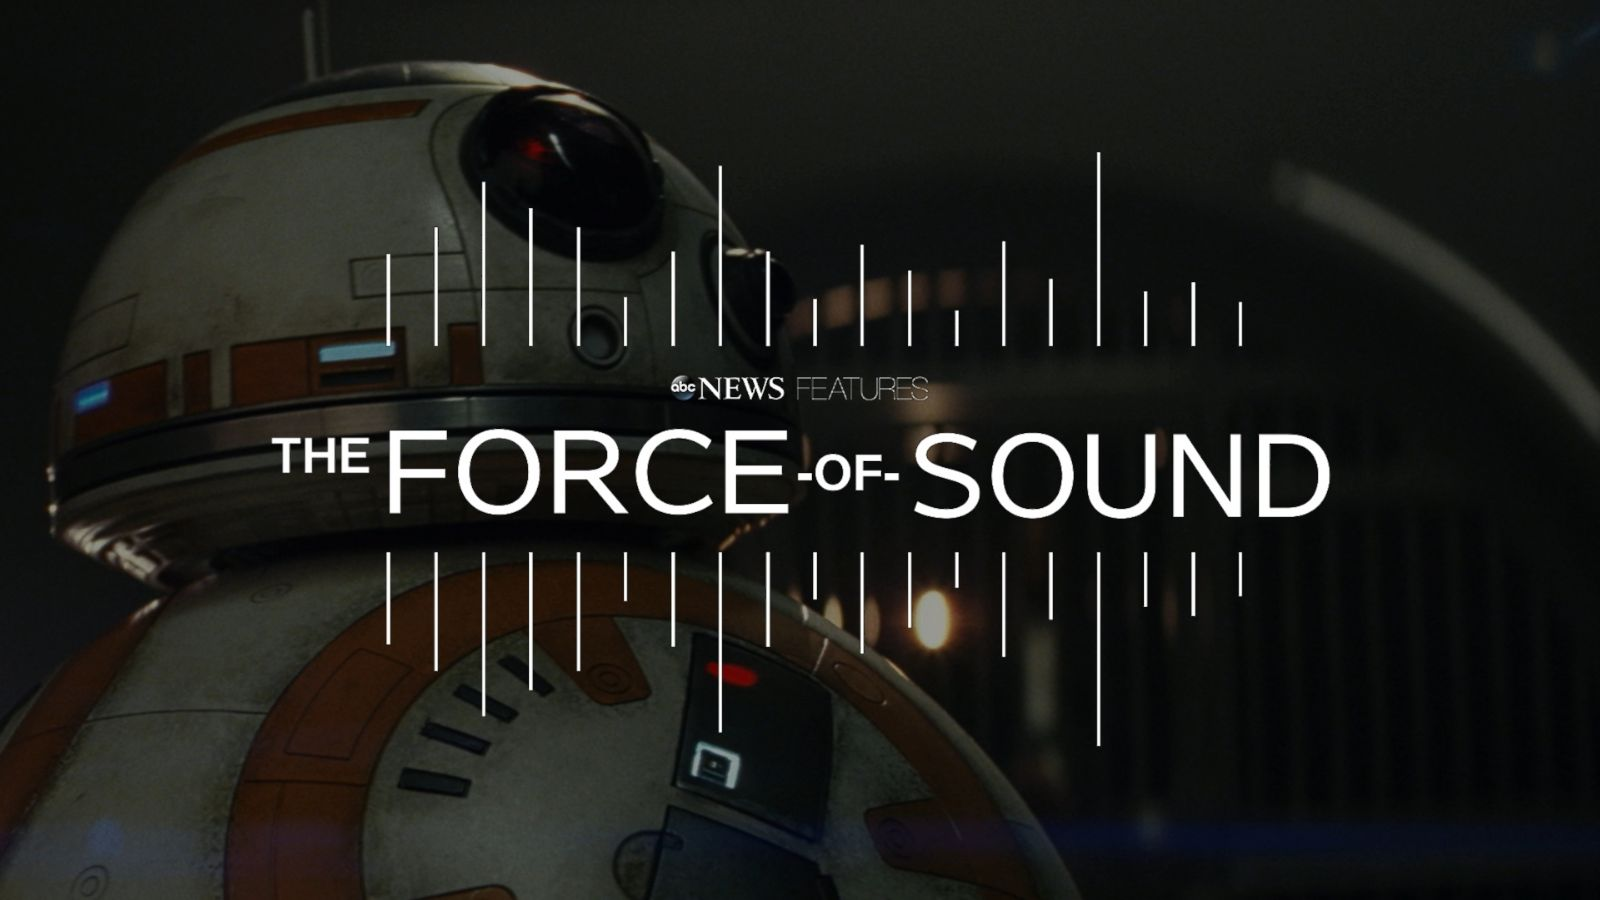 Star Wars sound designers reveal the secret sounds used to bring